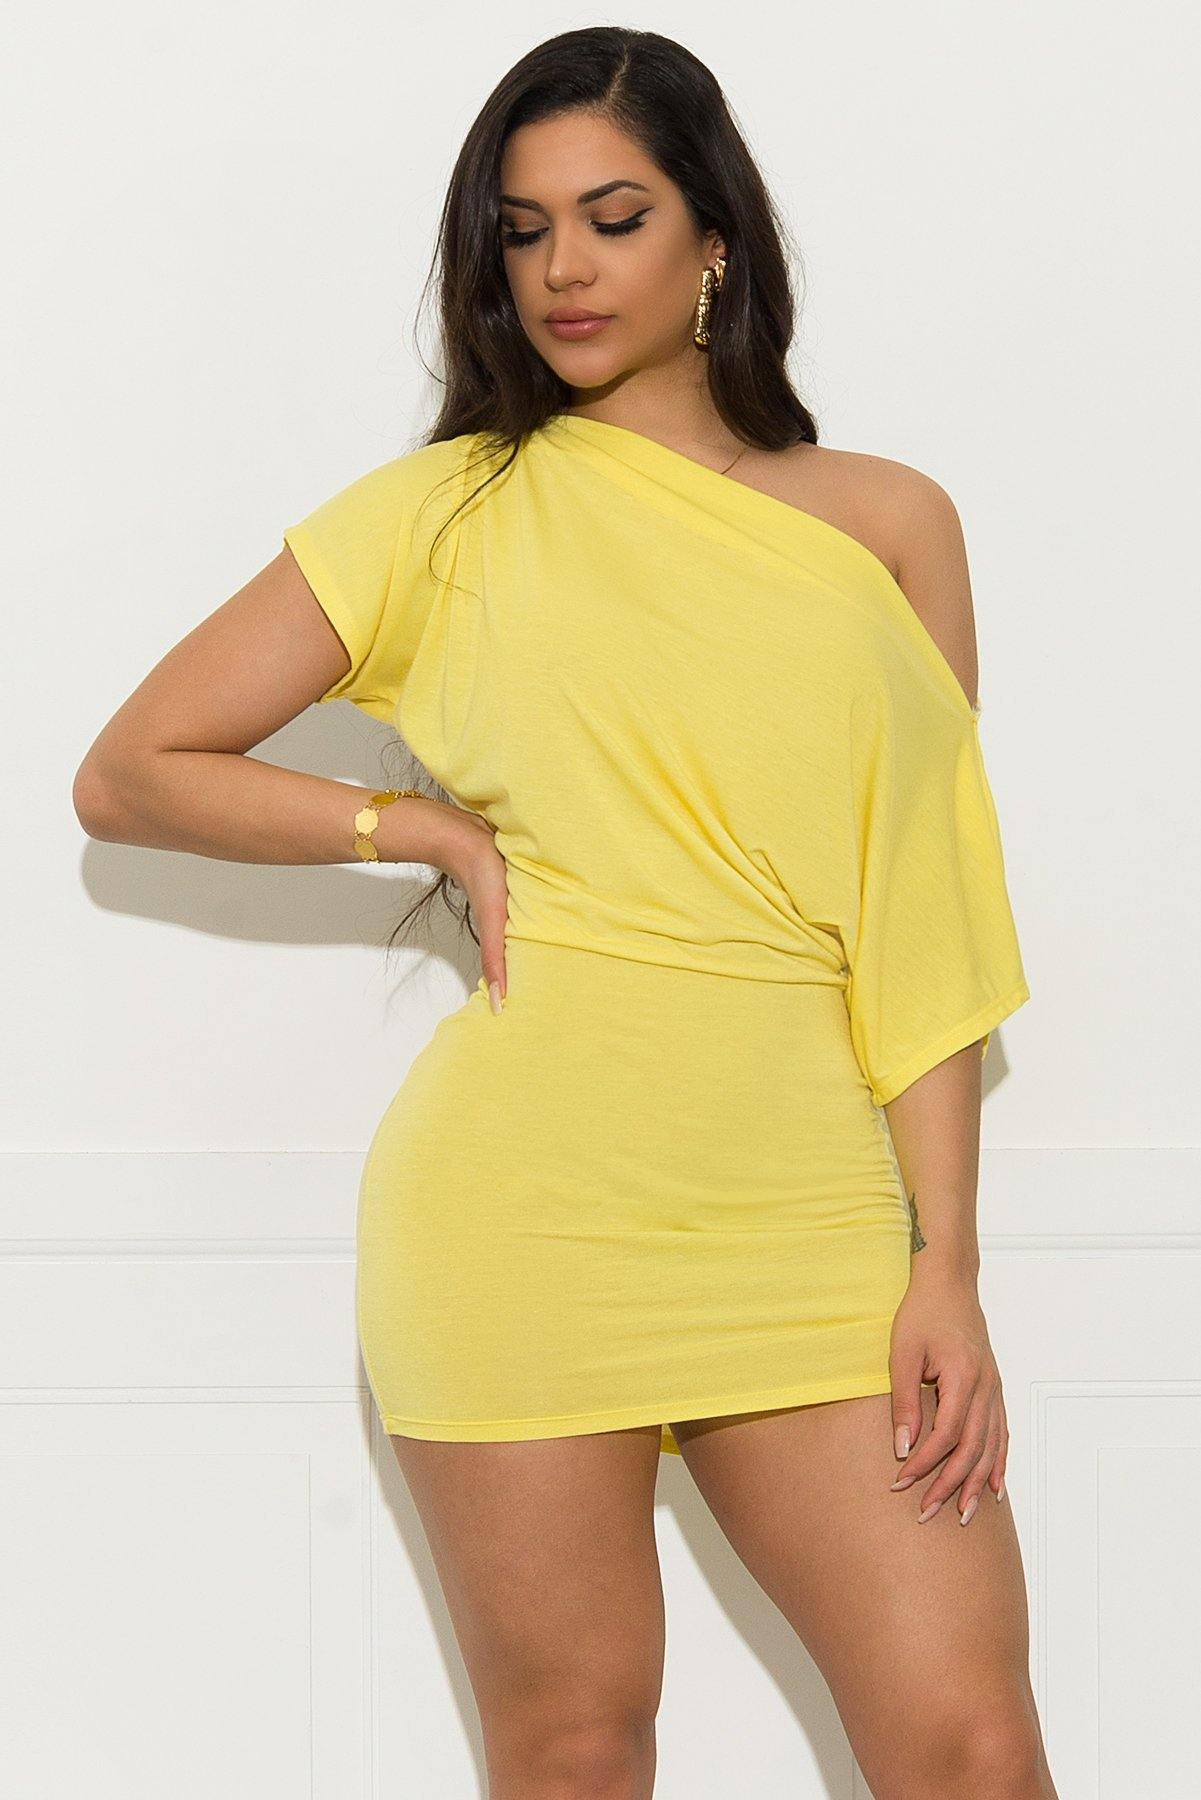 Adrianne Dress - Yellow